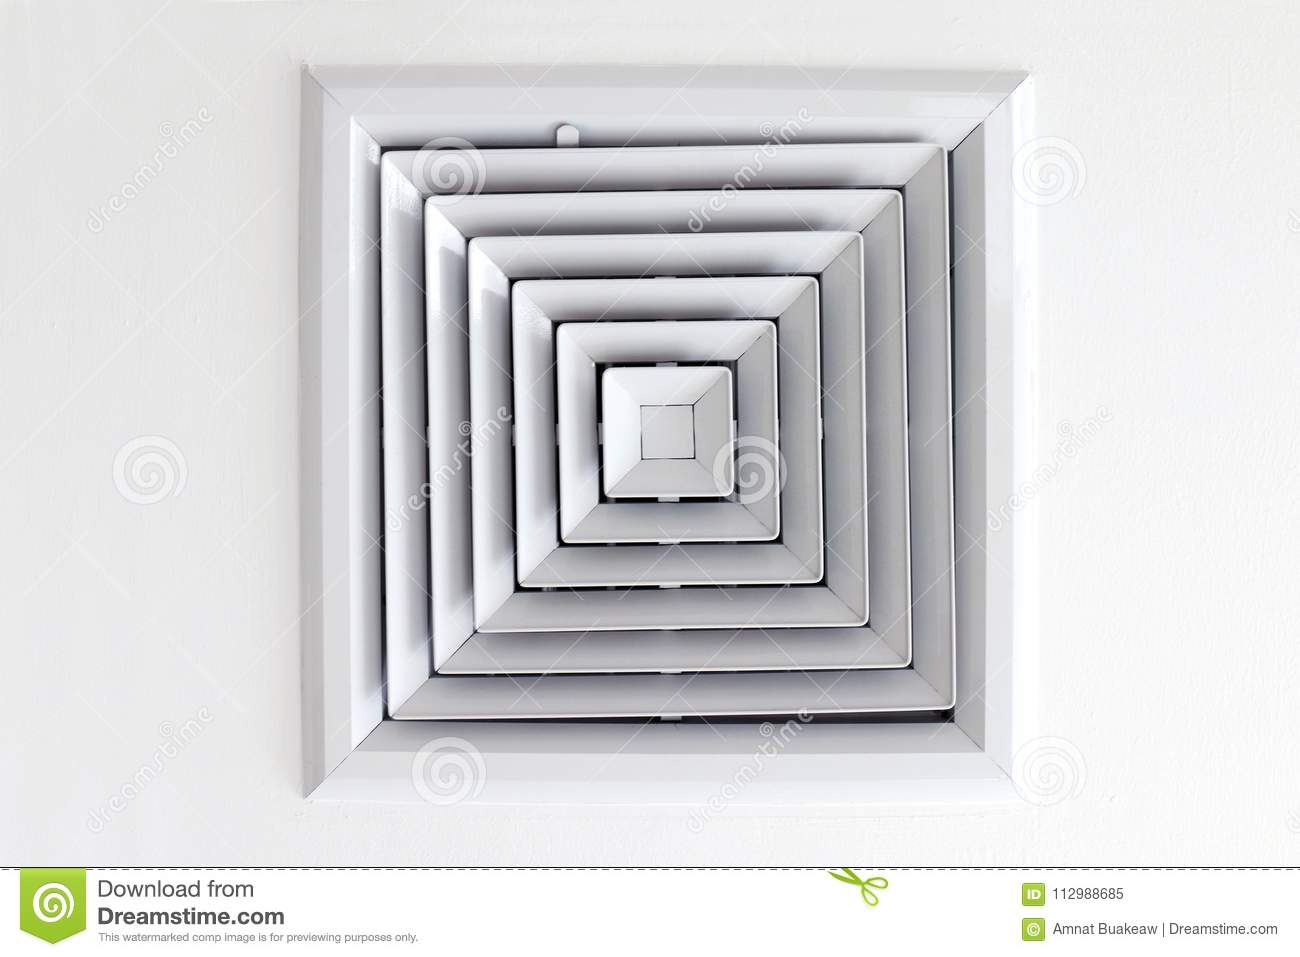 Air Duct Ceiling white, Air duct in square shape, condition vent modern air conditioner or air vent on ceiling white, Duct for con